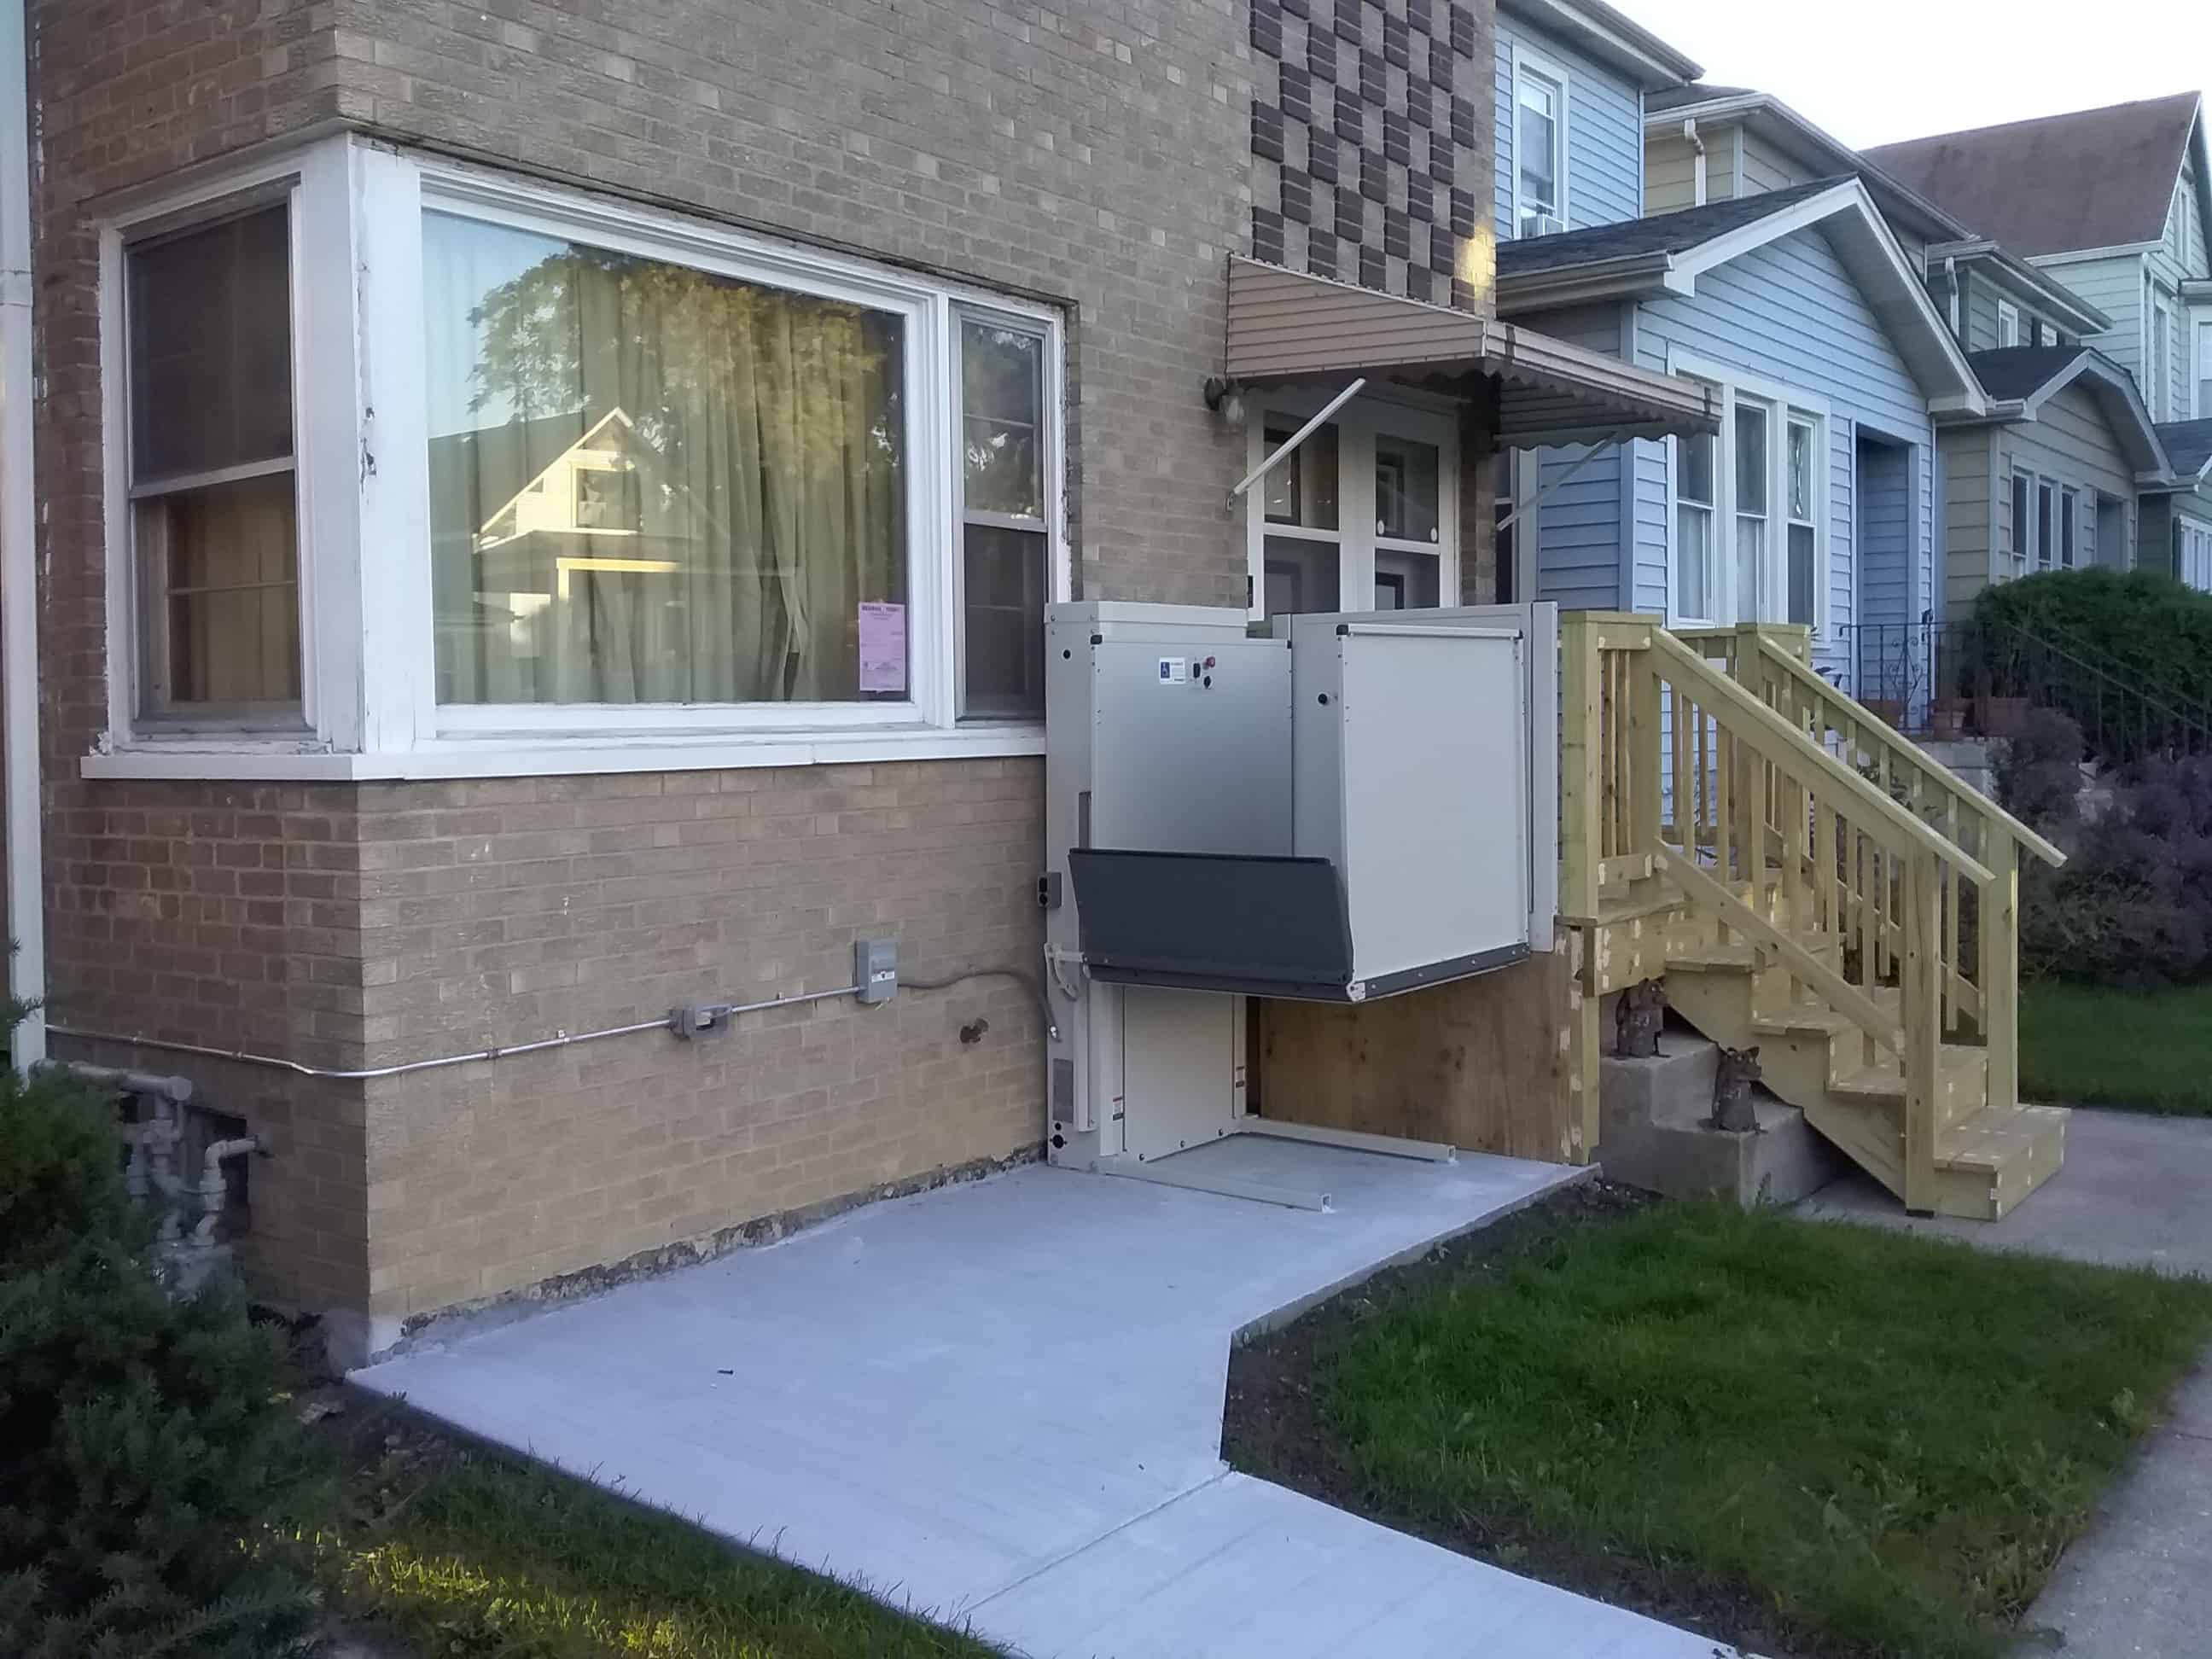 porch lift installed by Lifeway CHI in Berwyn, Illinois for safe home access